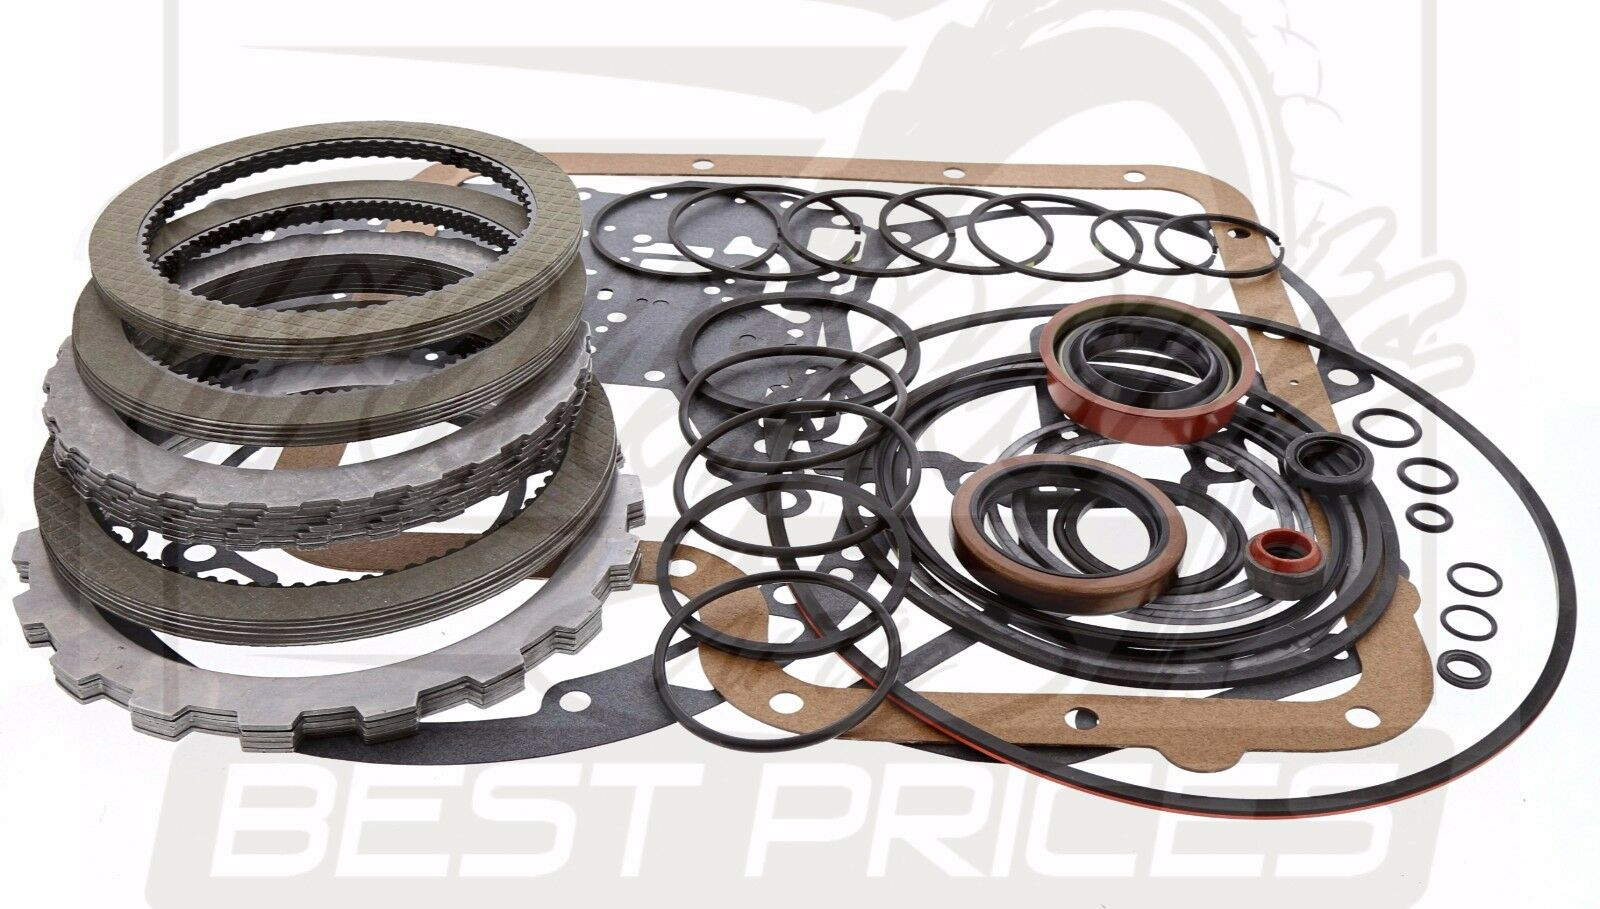 Ford C6 C 6 High Energy Transmission Rebuild Kit 76 96 8975 1 Of 2 See More